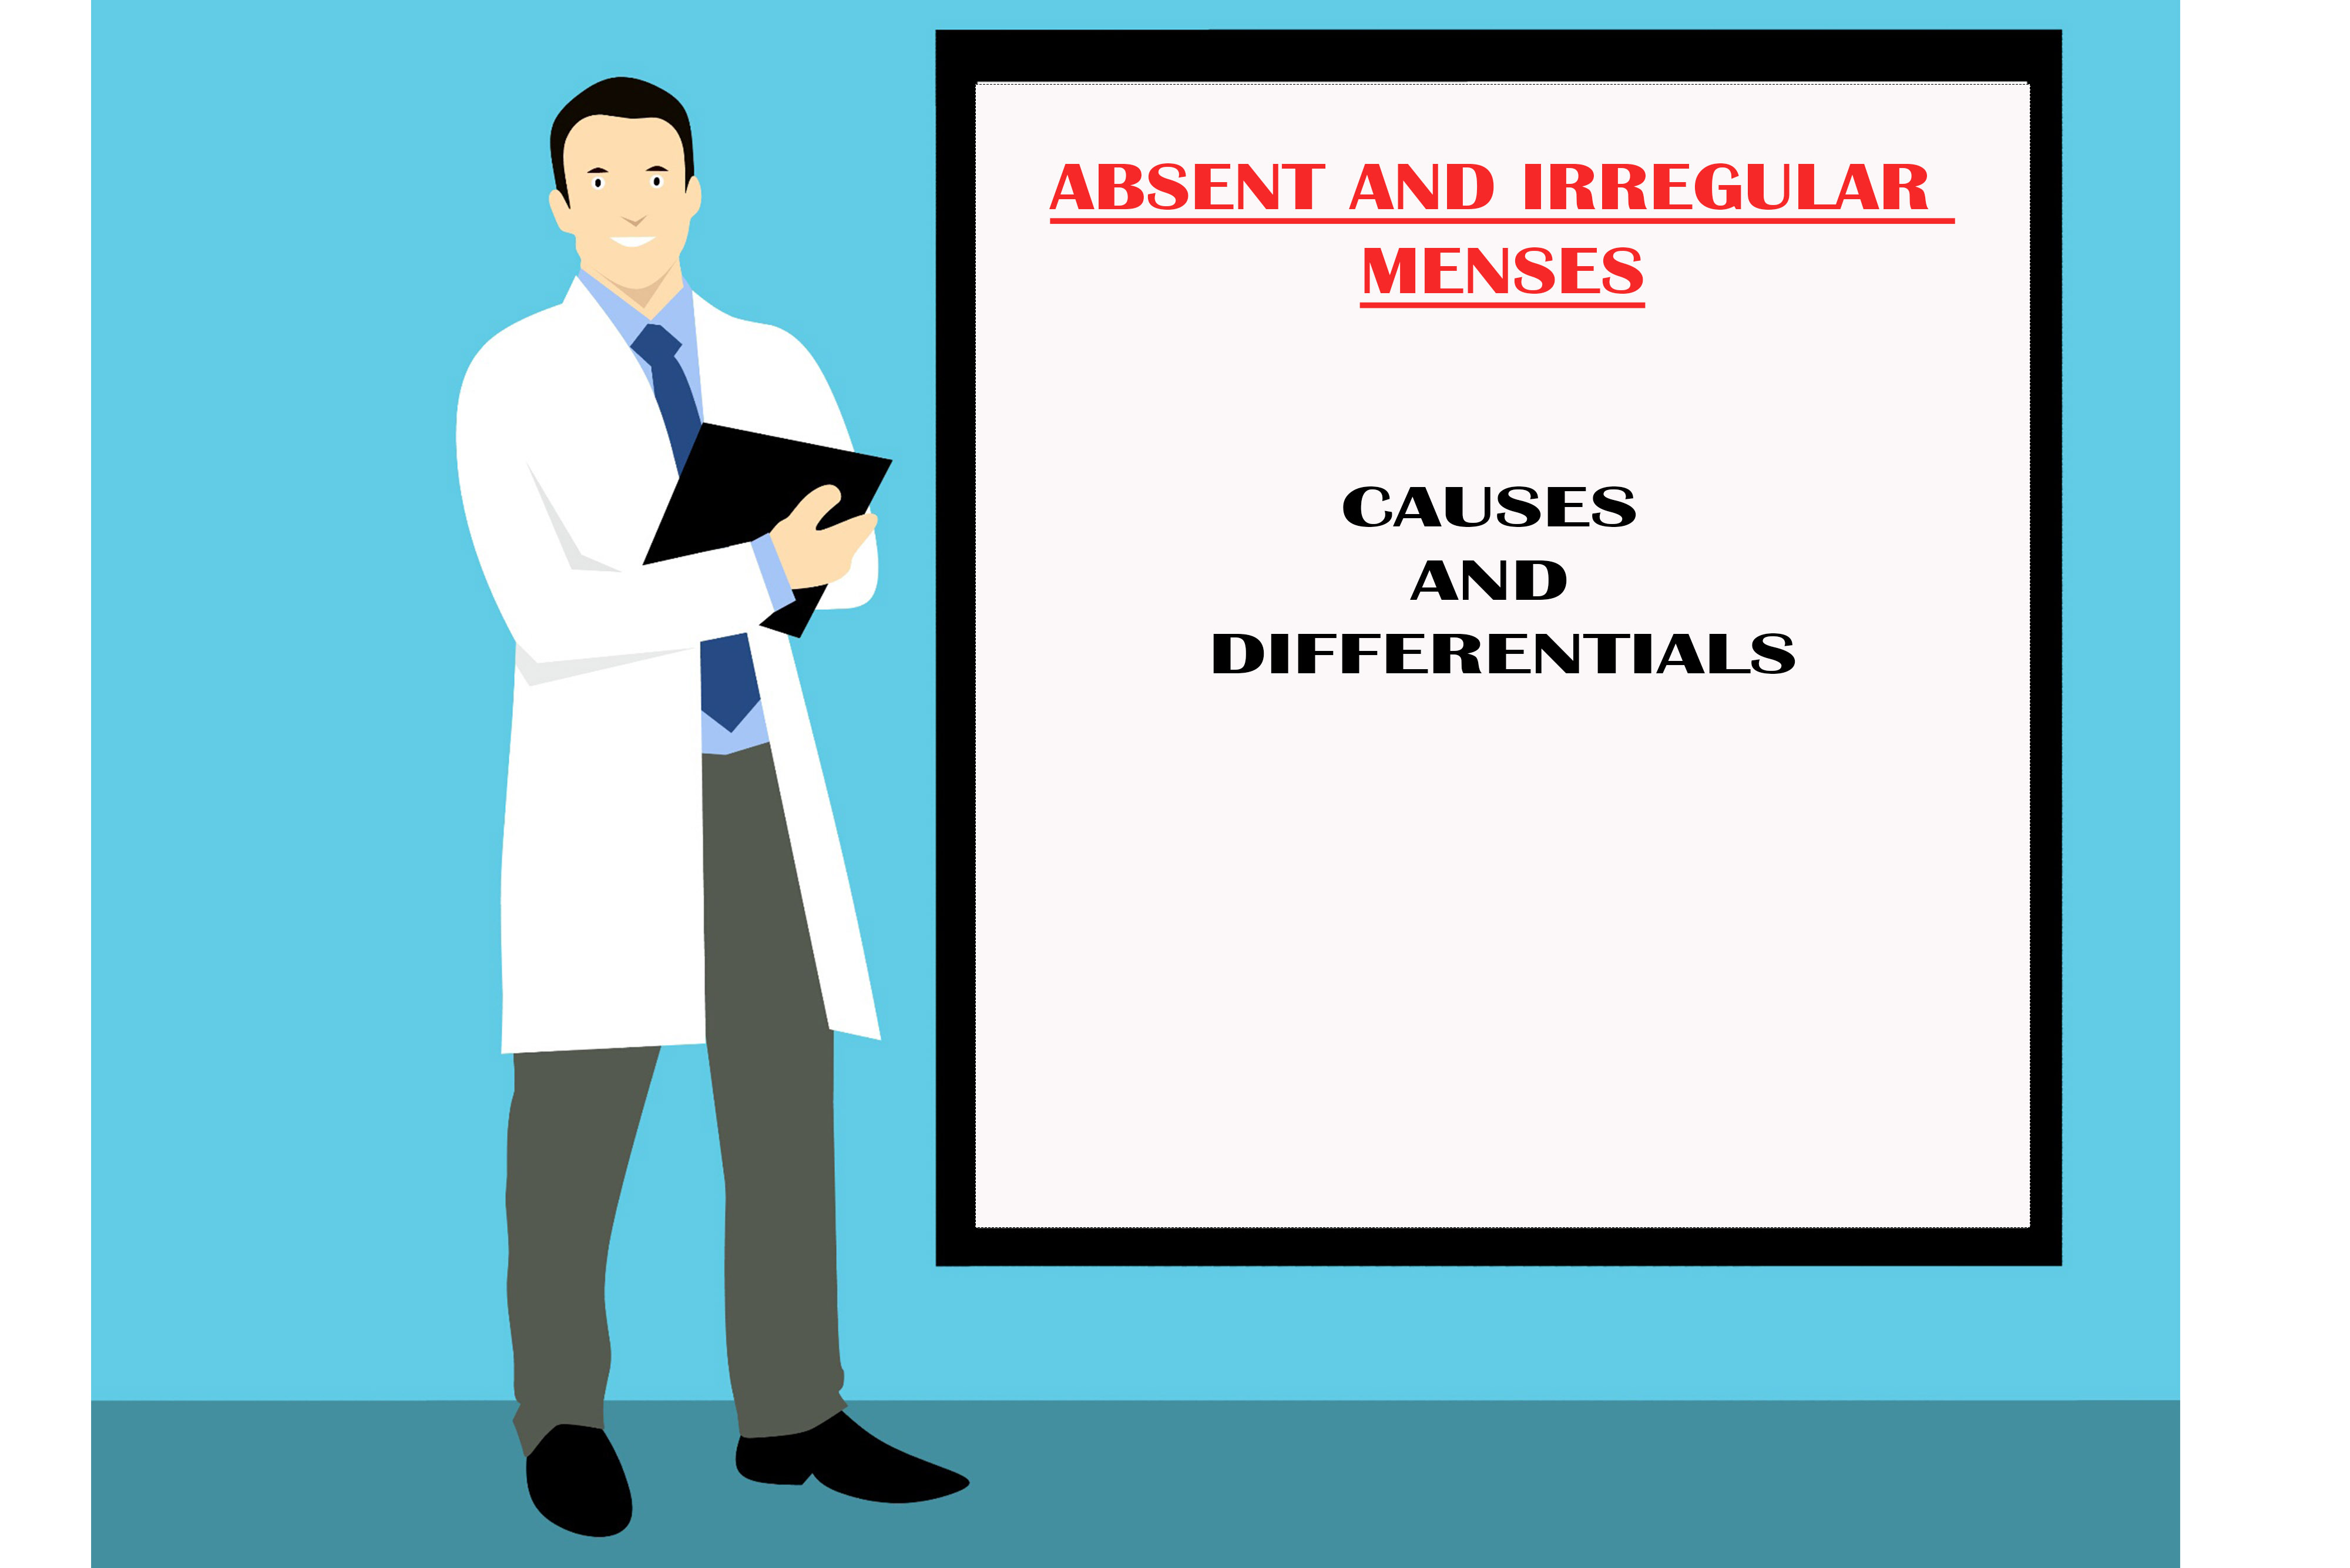 ABSENT AND IRREGULAR MENSES: CAUSES AND DIFFERENTIALS